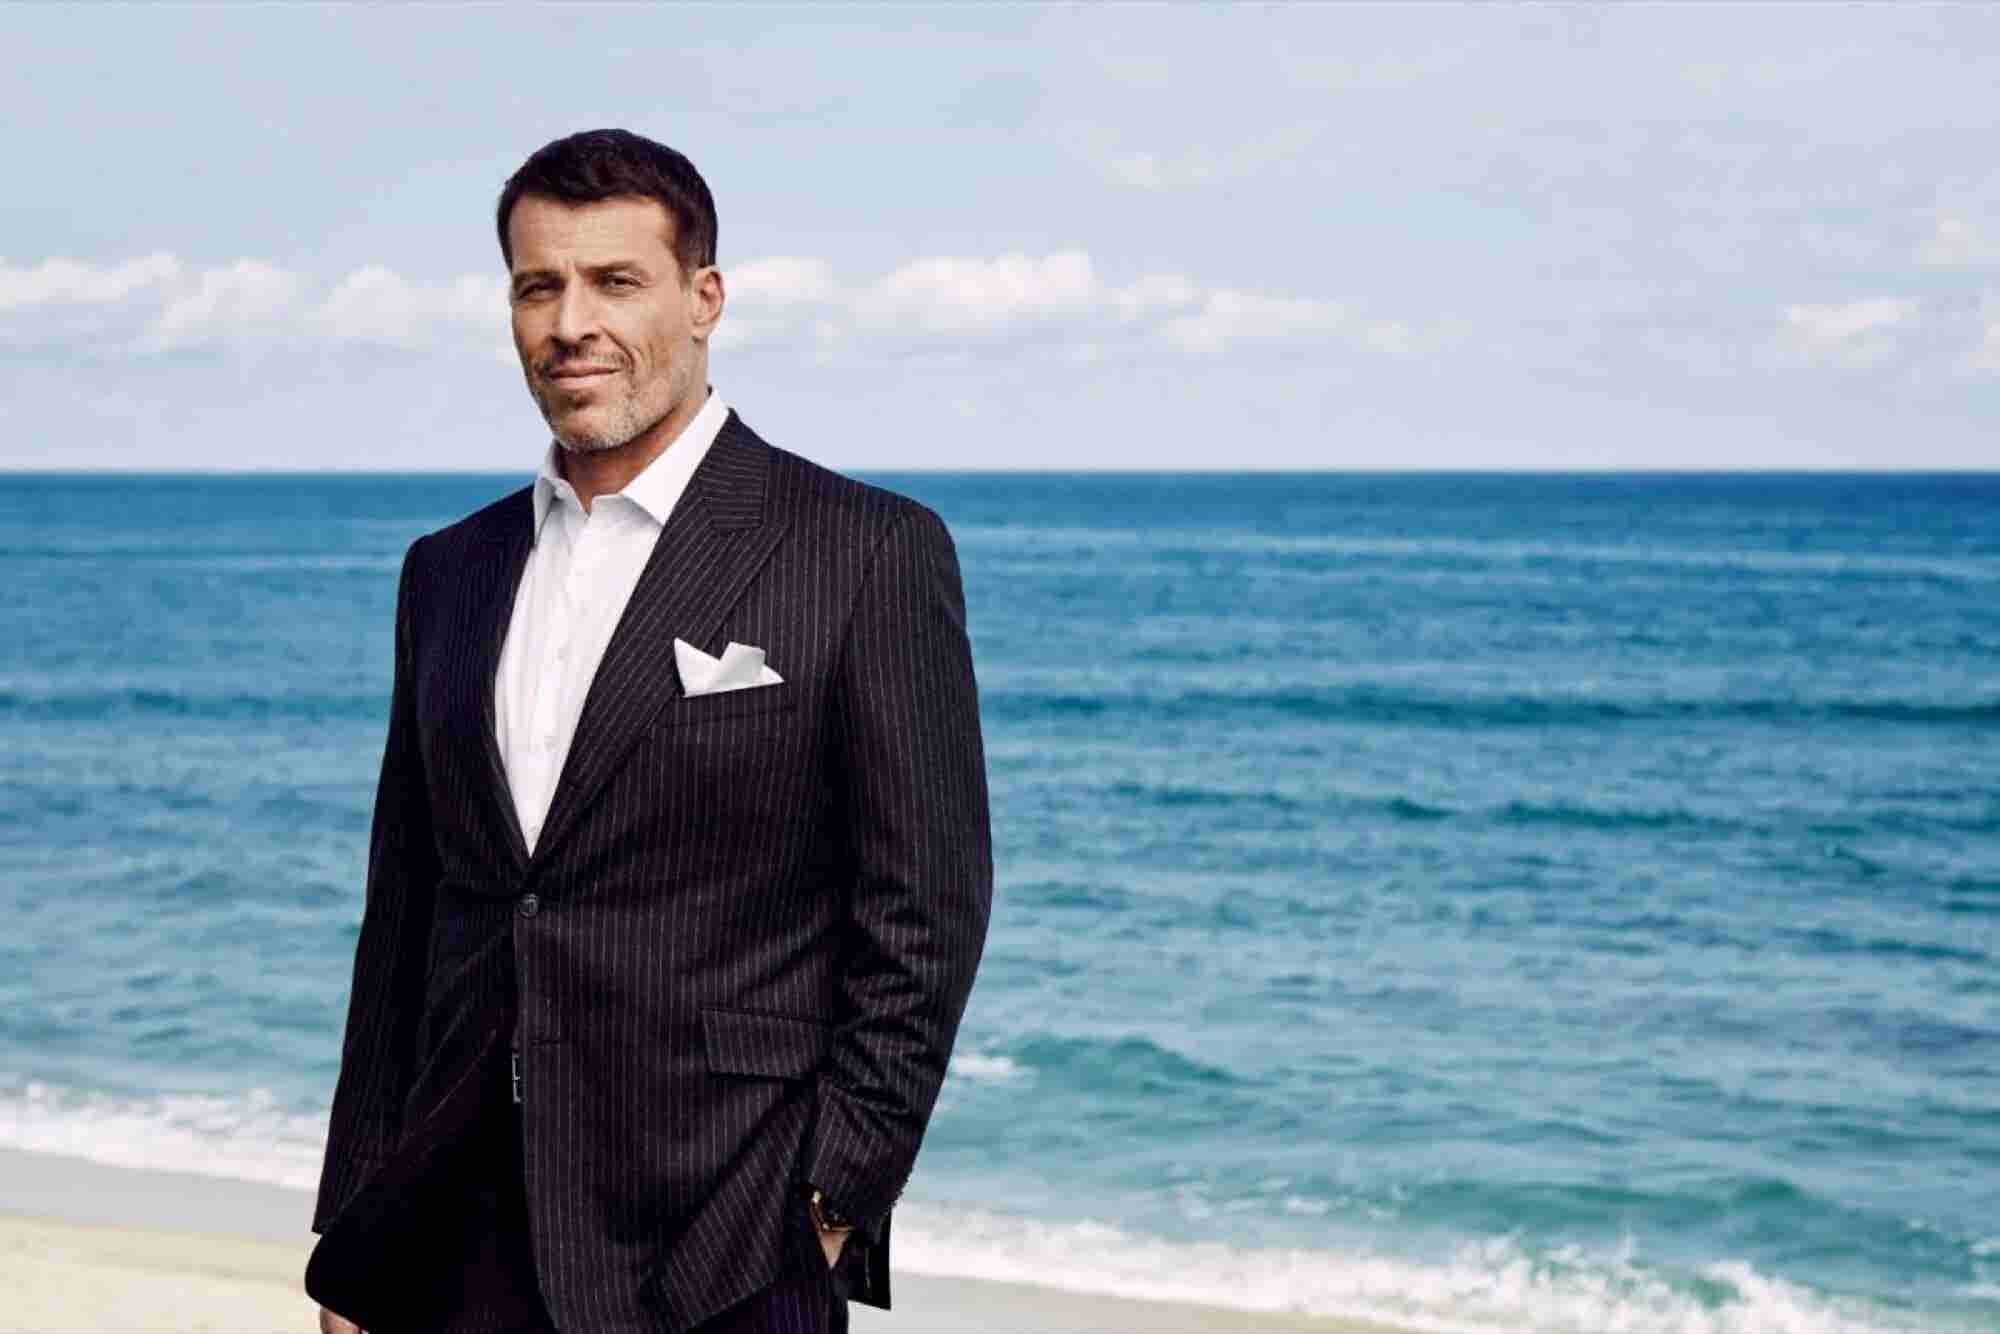 Tony Robbins: Could Moving Be the Answer?